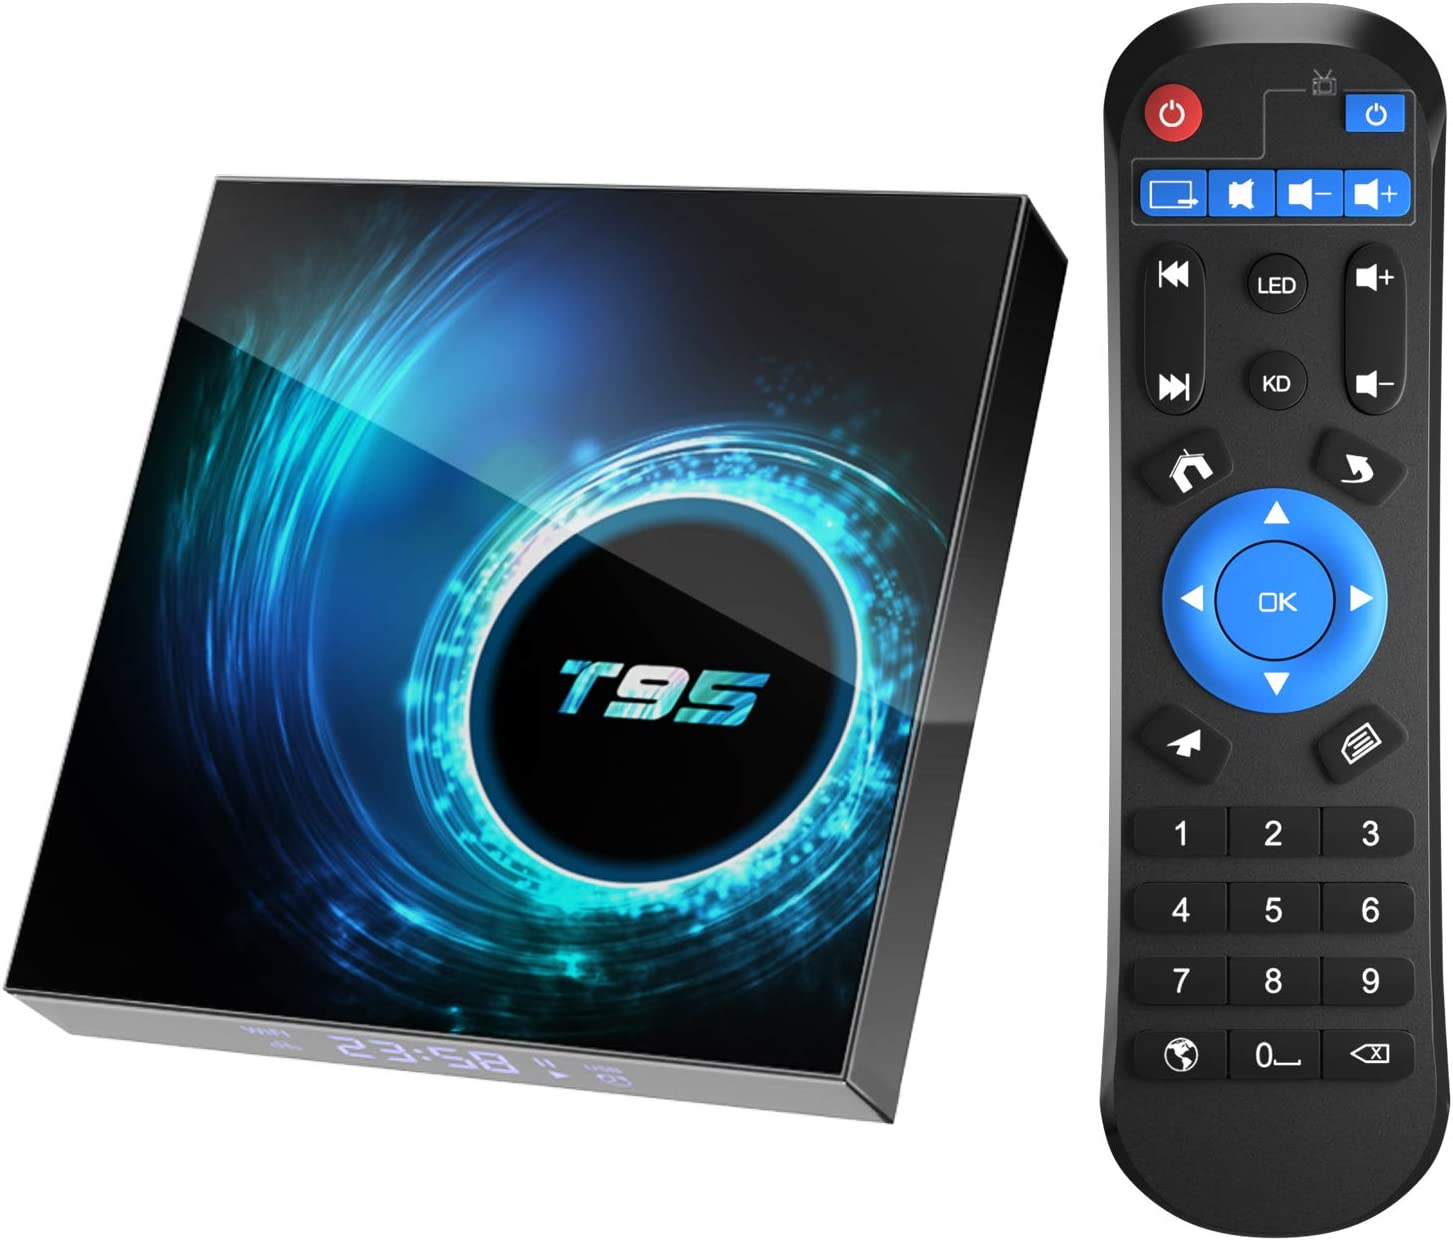 Android Challenge the lowest price of Japan ☆ 10.0 TV Box T95 4GB Allwinner ROM H616 At the price RAM Quad-Core 64